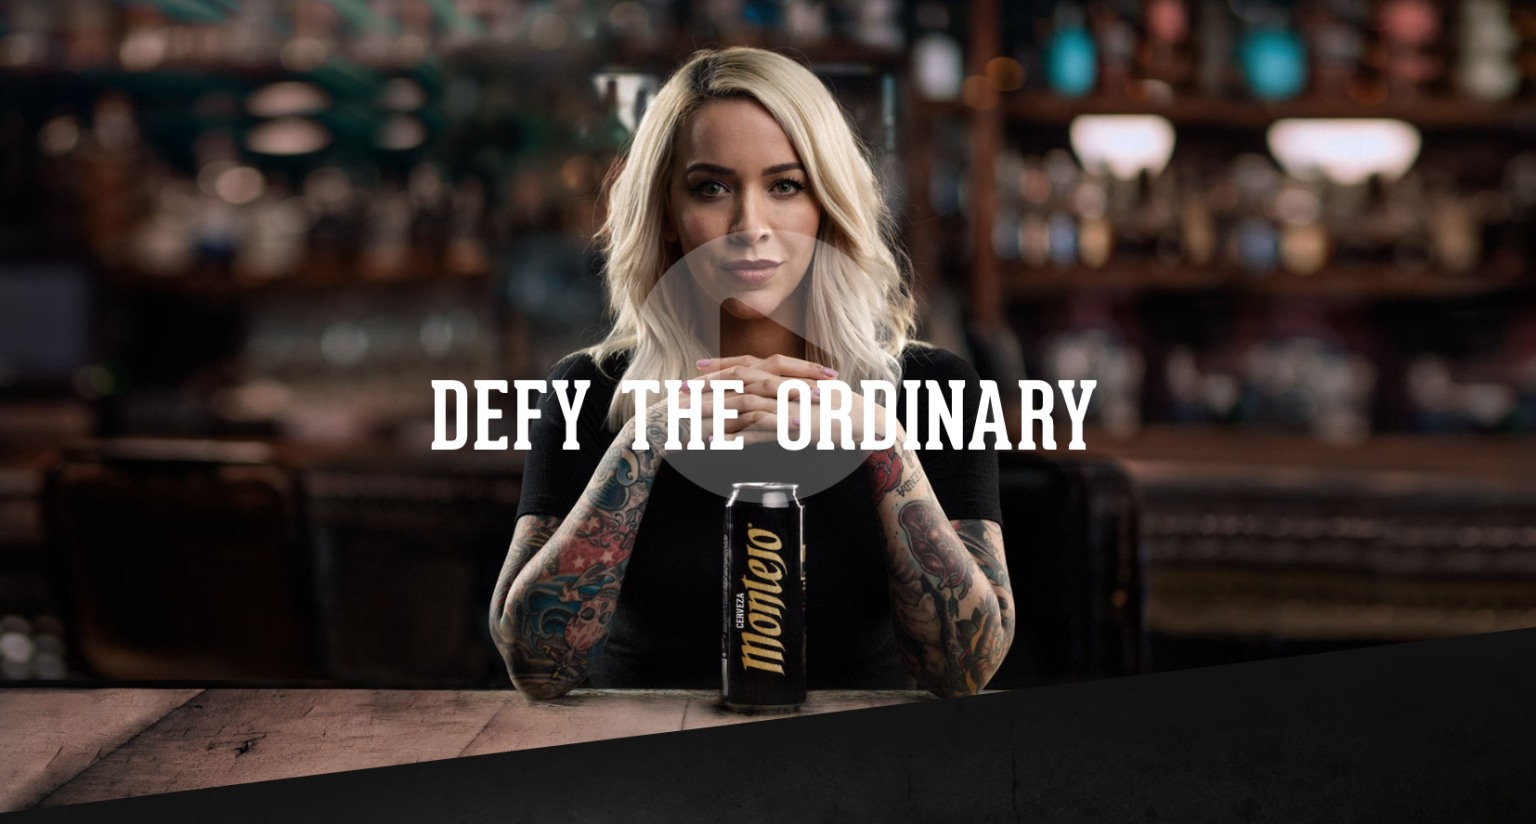 Anheuser Busch | Montejo Defy the Ordinary